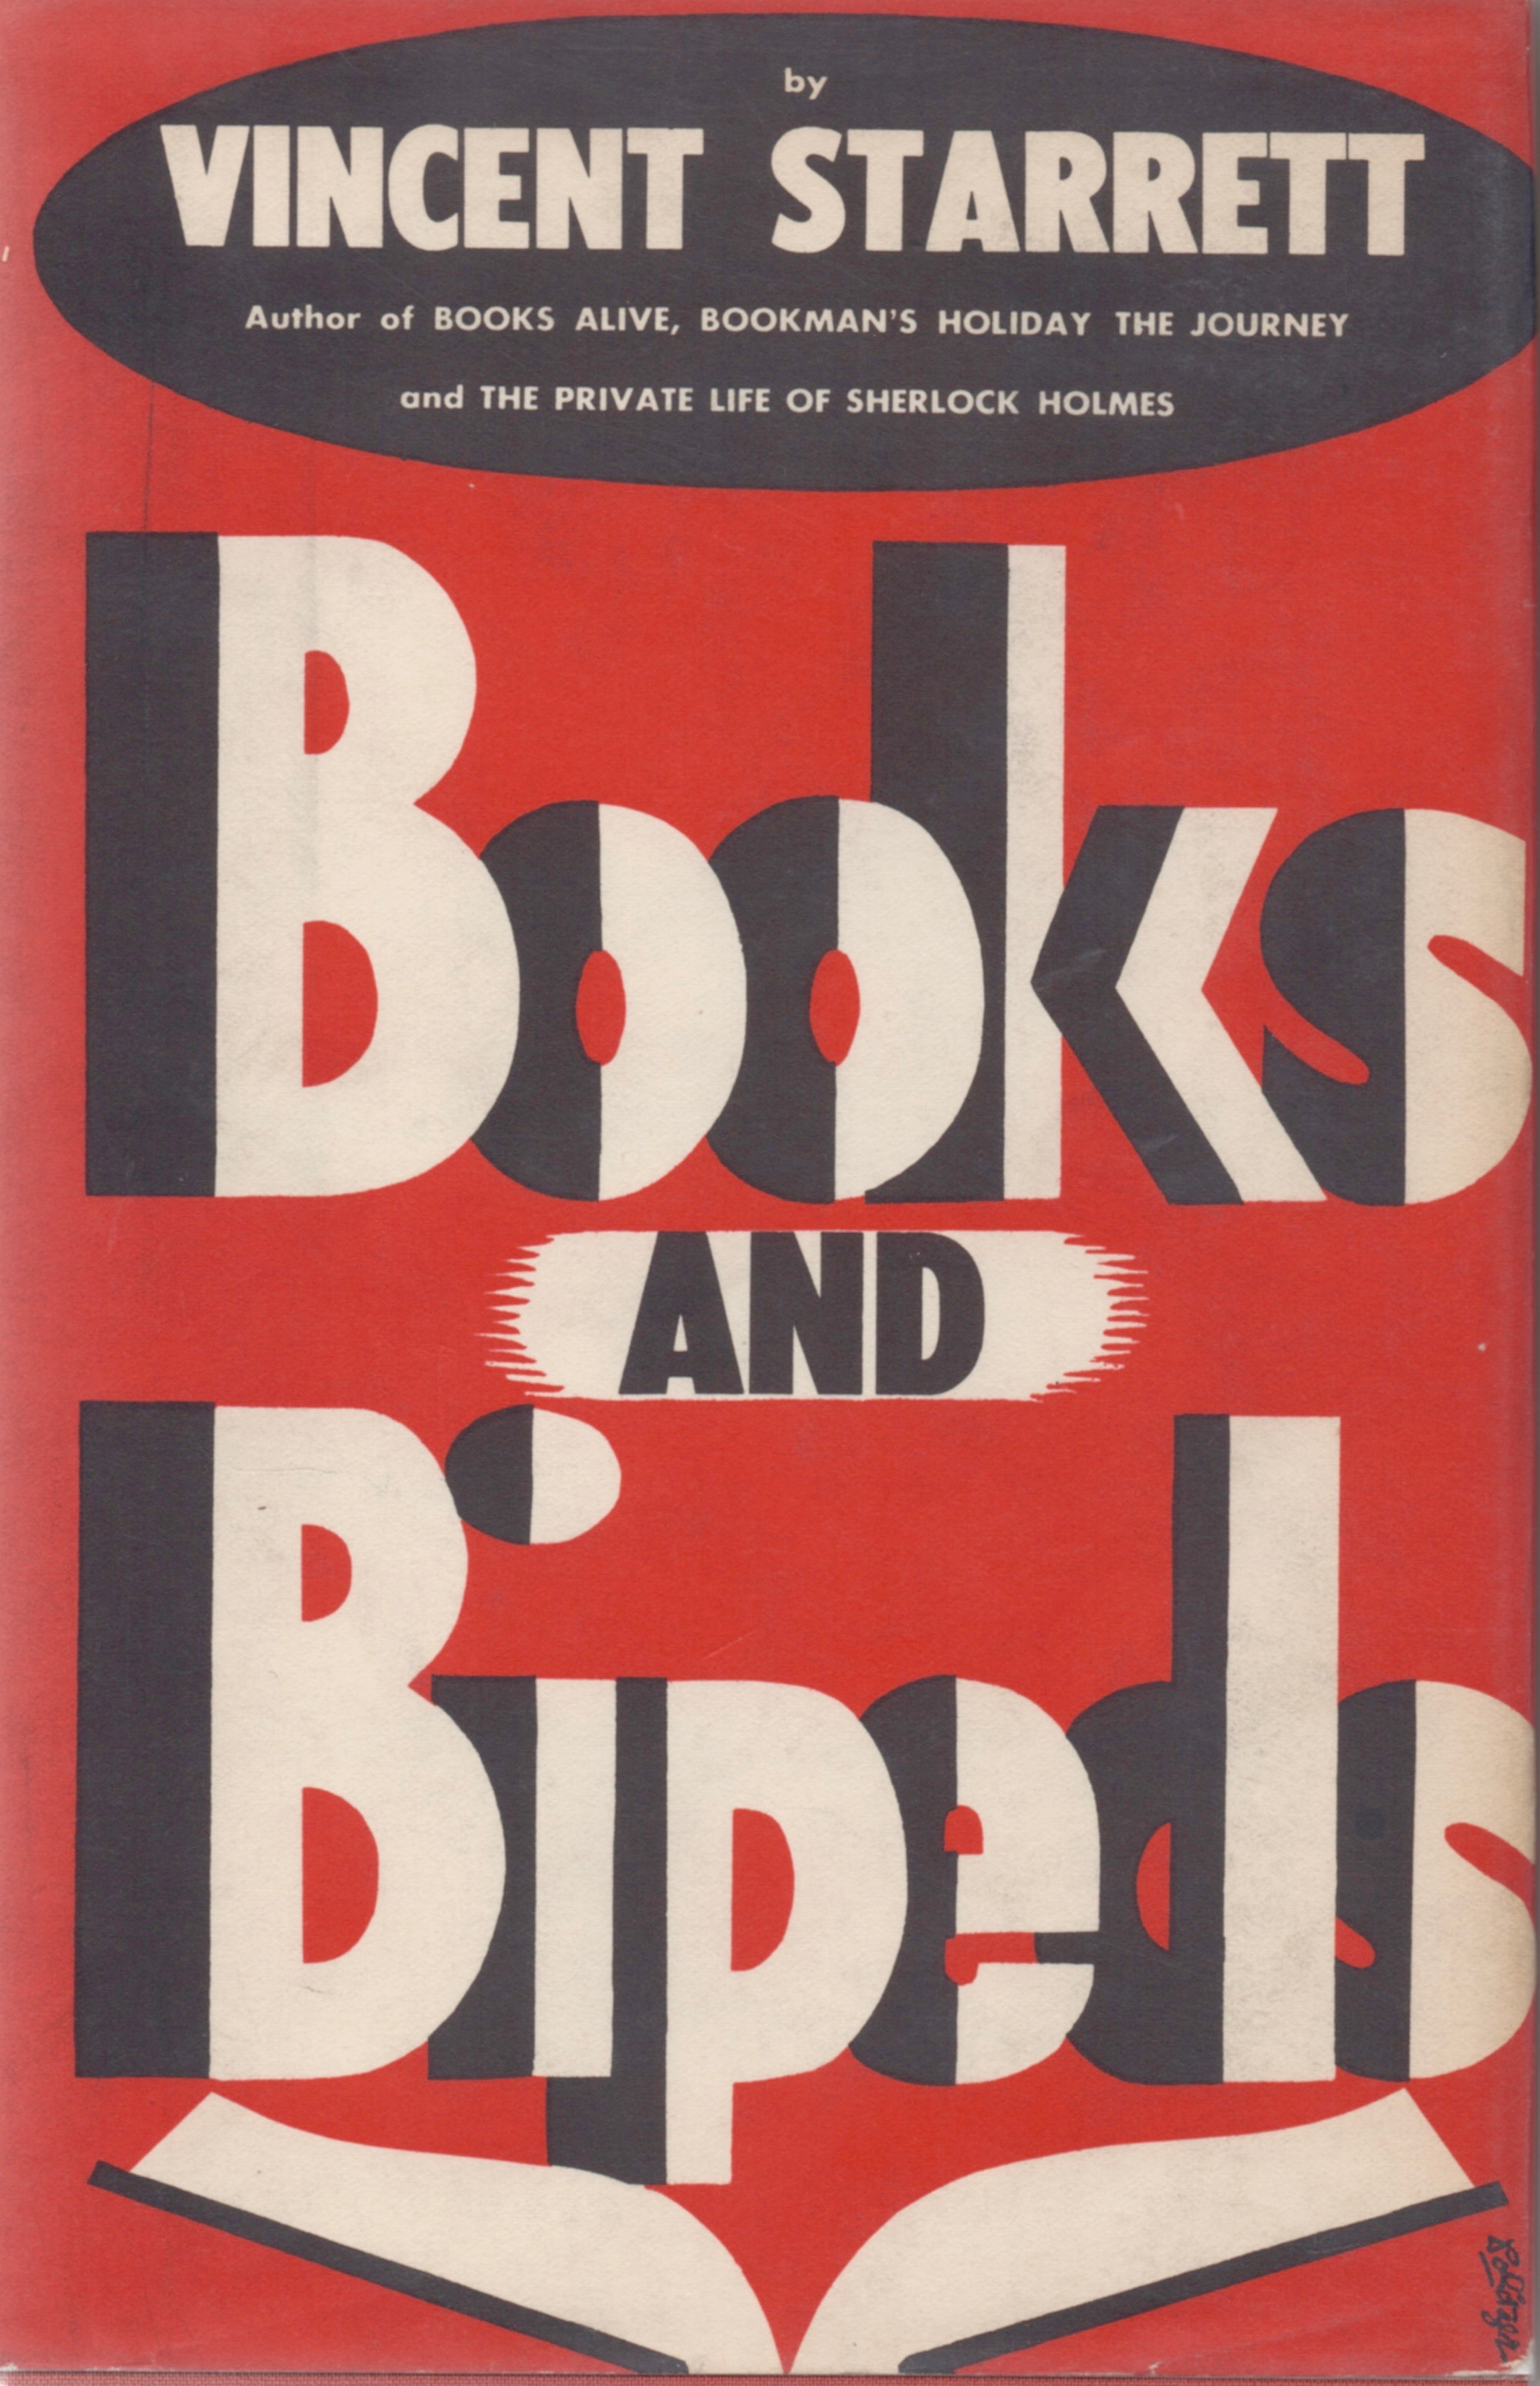 The dust jacket to  Books and Bipeds